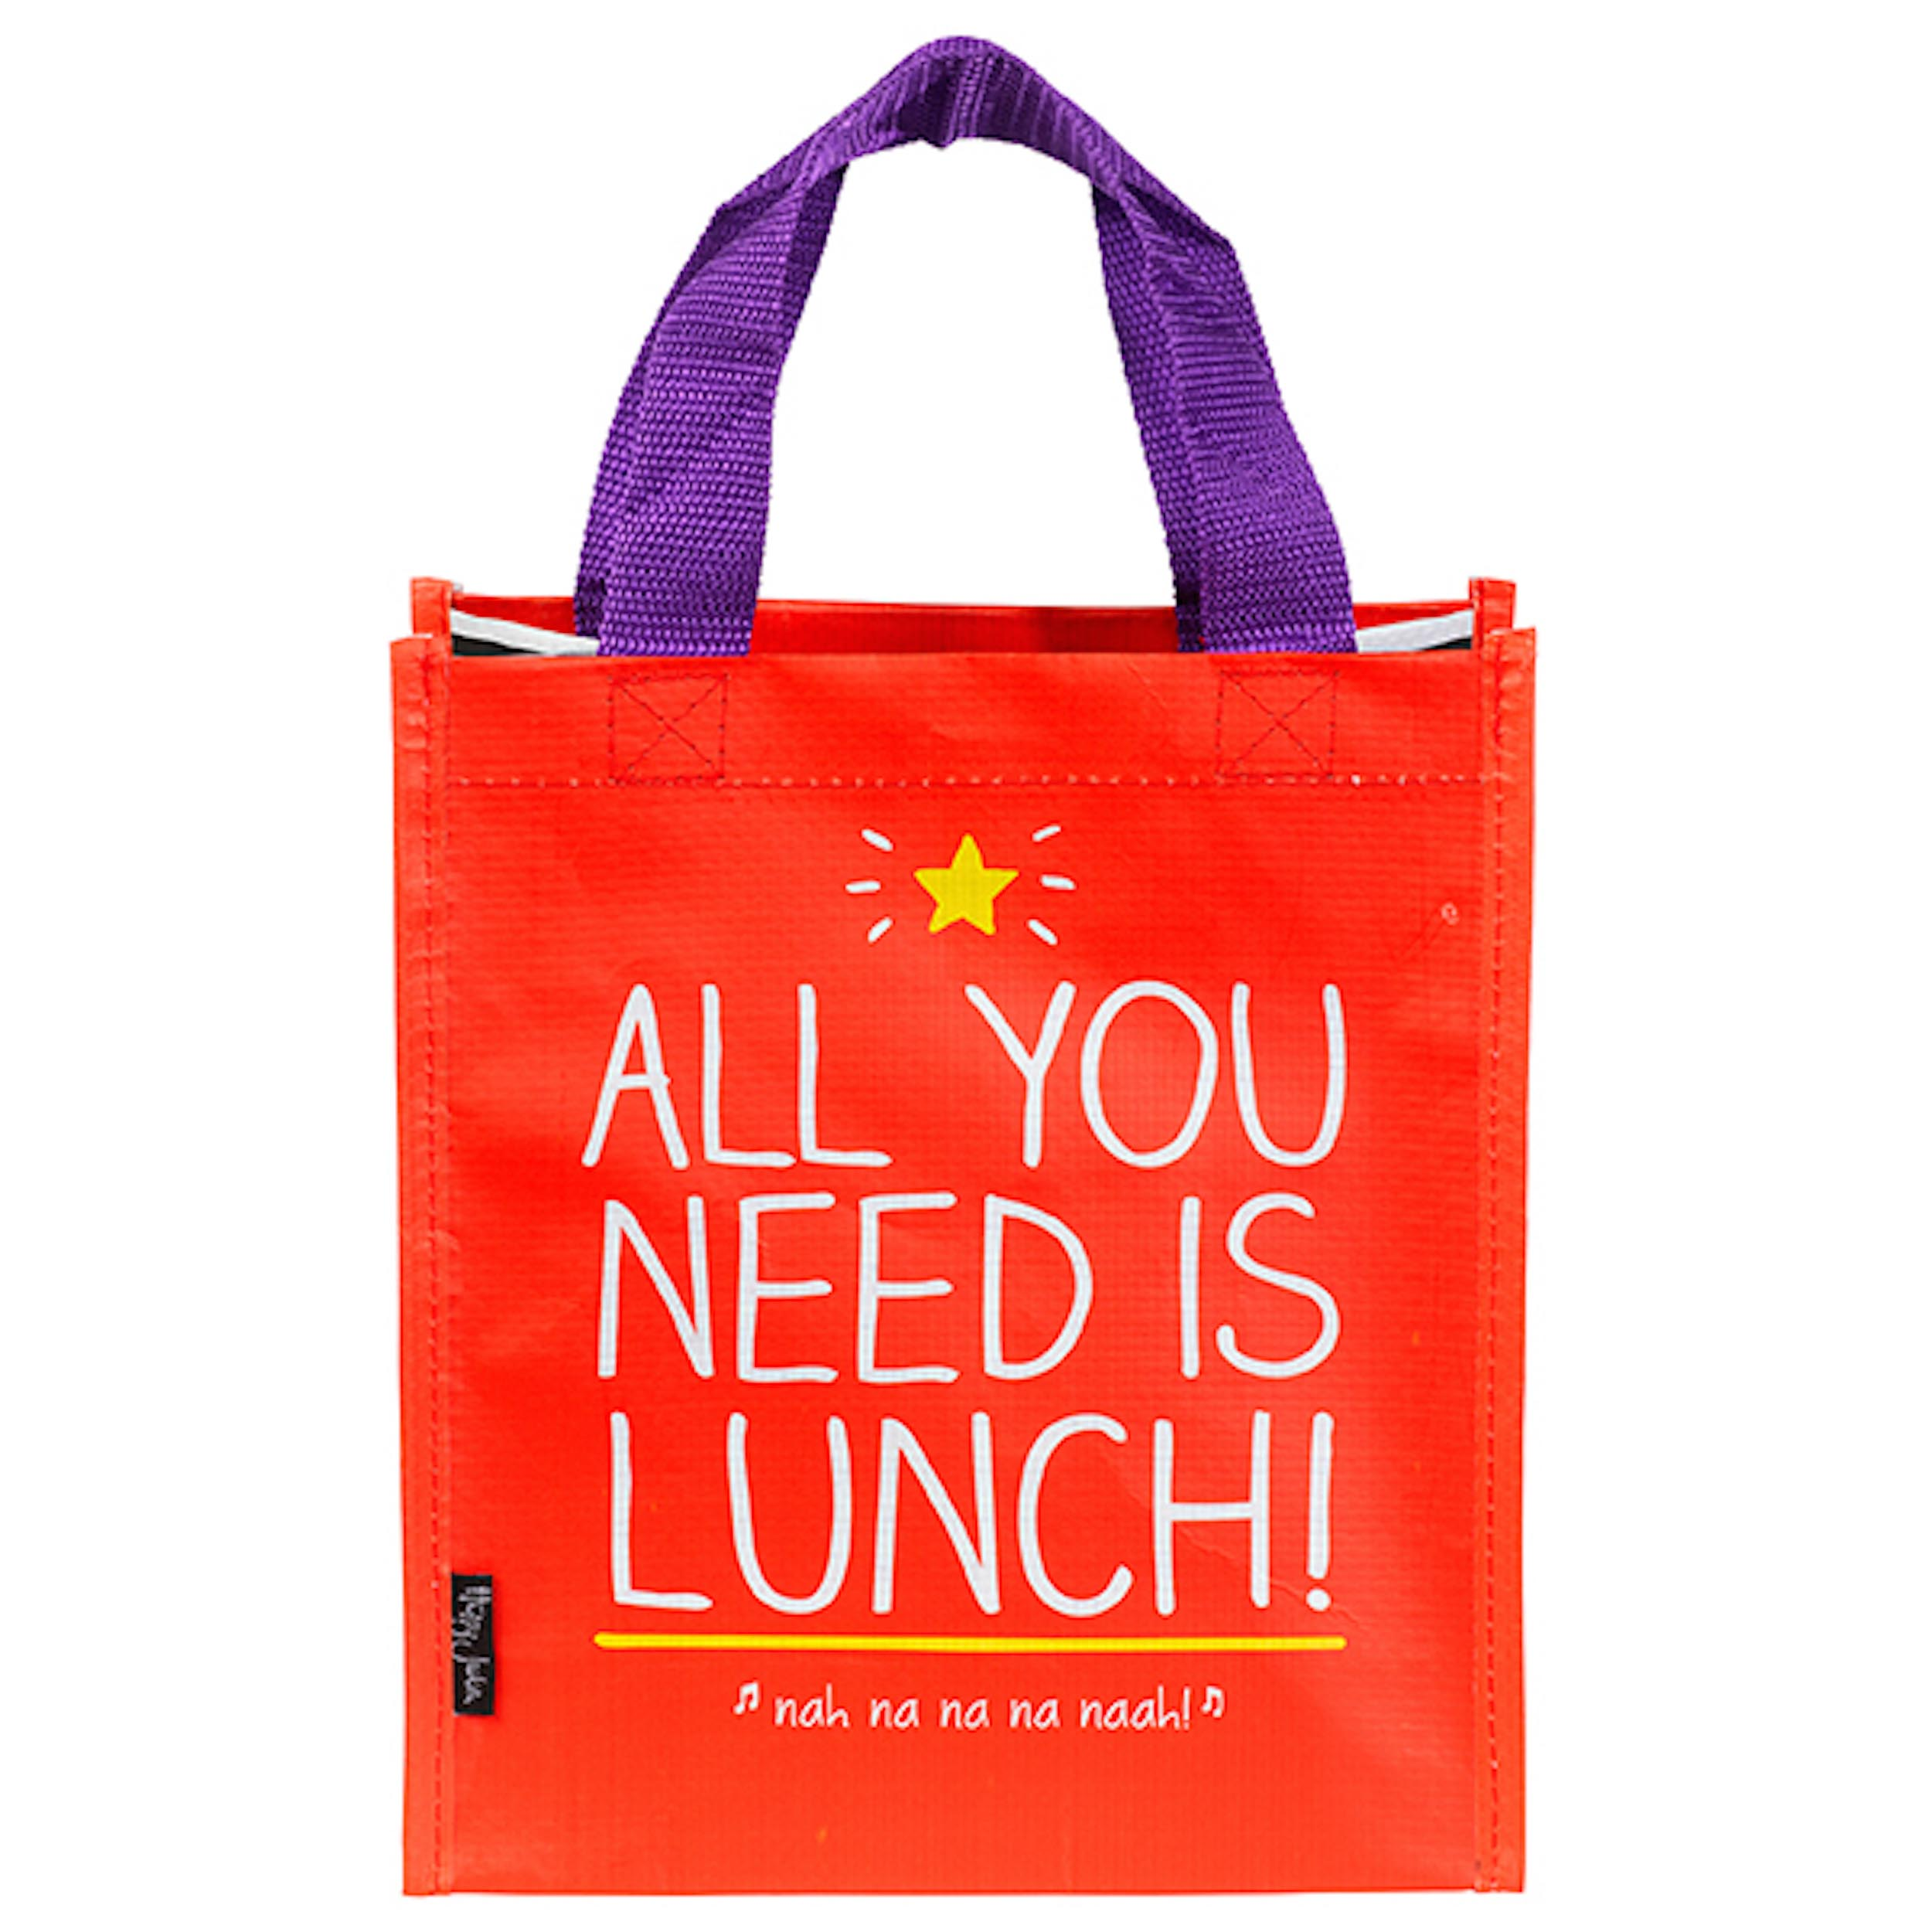 All You Need is Lunch' Tote Bag